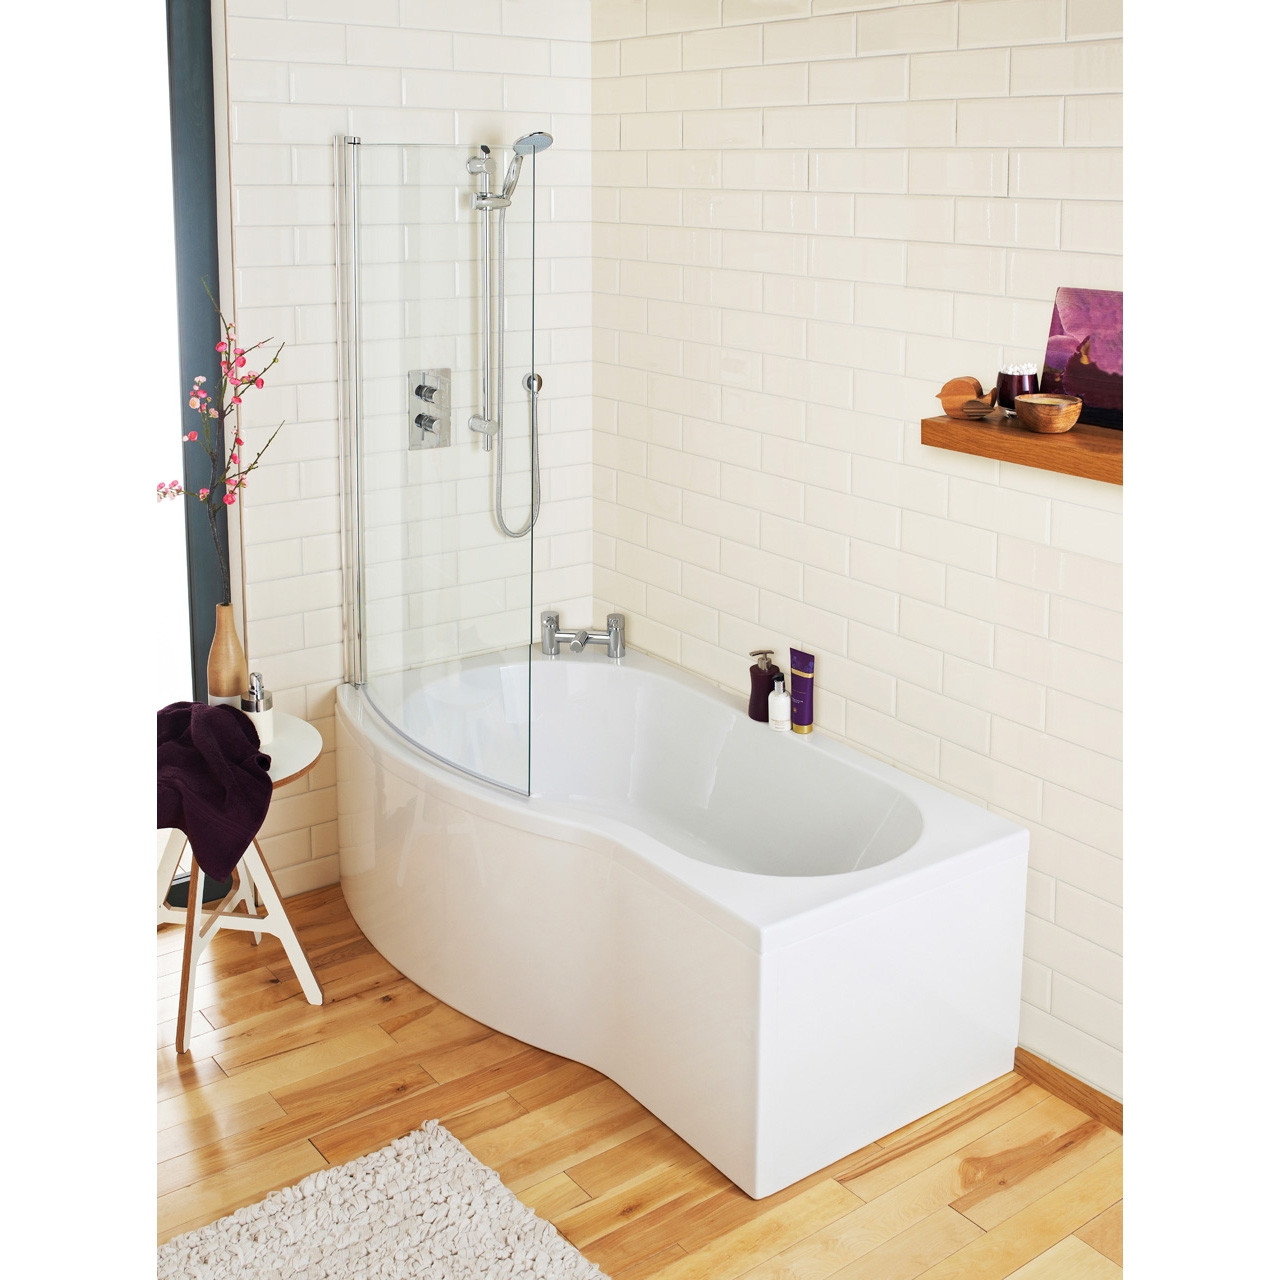 Premier B Shaped Left Hand Shower Bath 1500mm x 900mm x 740mm - BMP1585L